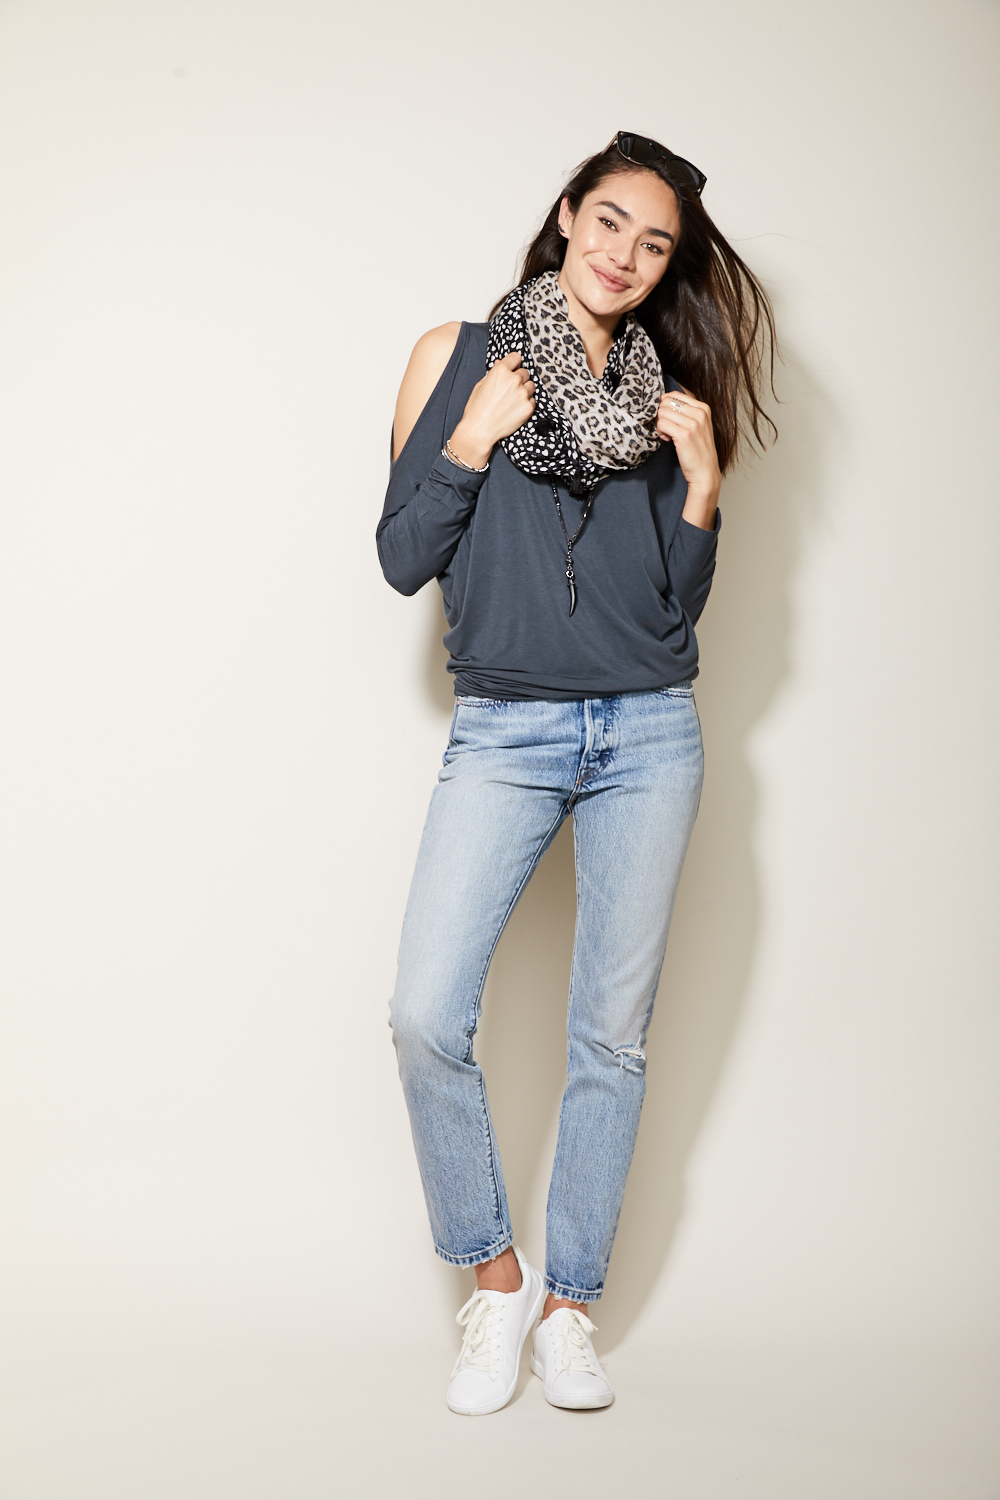 3.The Relaxed Boyfriend - This is one staple that everyone needs! The relaxed boyfriend jean is a no-brainer because it combines casual and classic. Roll up the bottoms and pair them with our favorite Mia Knit top and sneakers for the weekend, or throw on a heel or ankle boot to go out with your girlfriends. These are sure to become one of those jeans that you will reach for again and again.